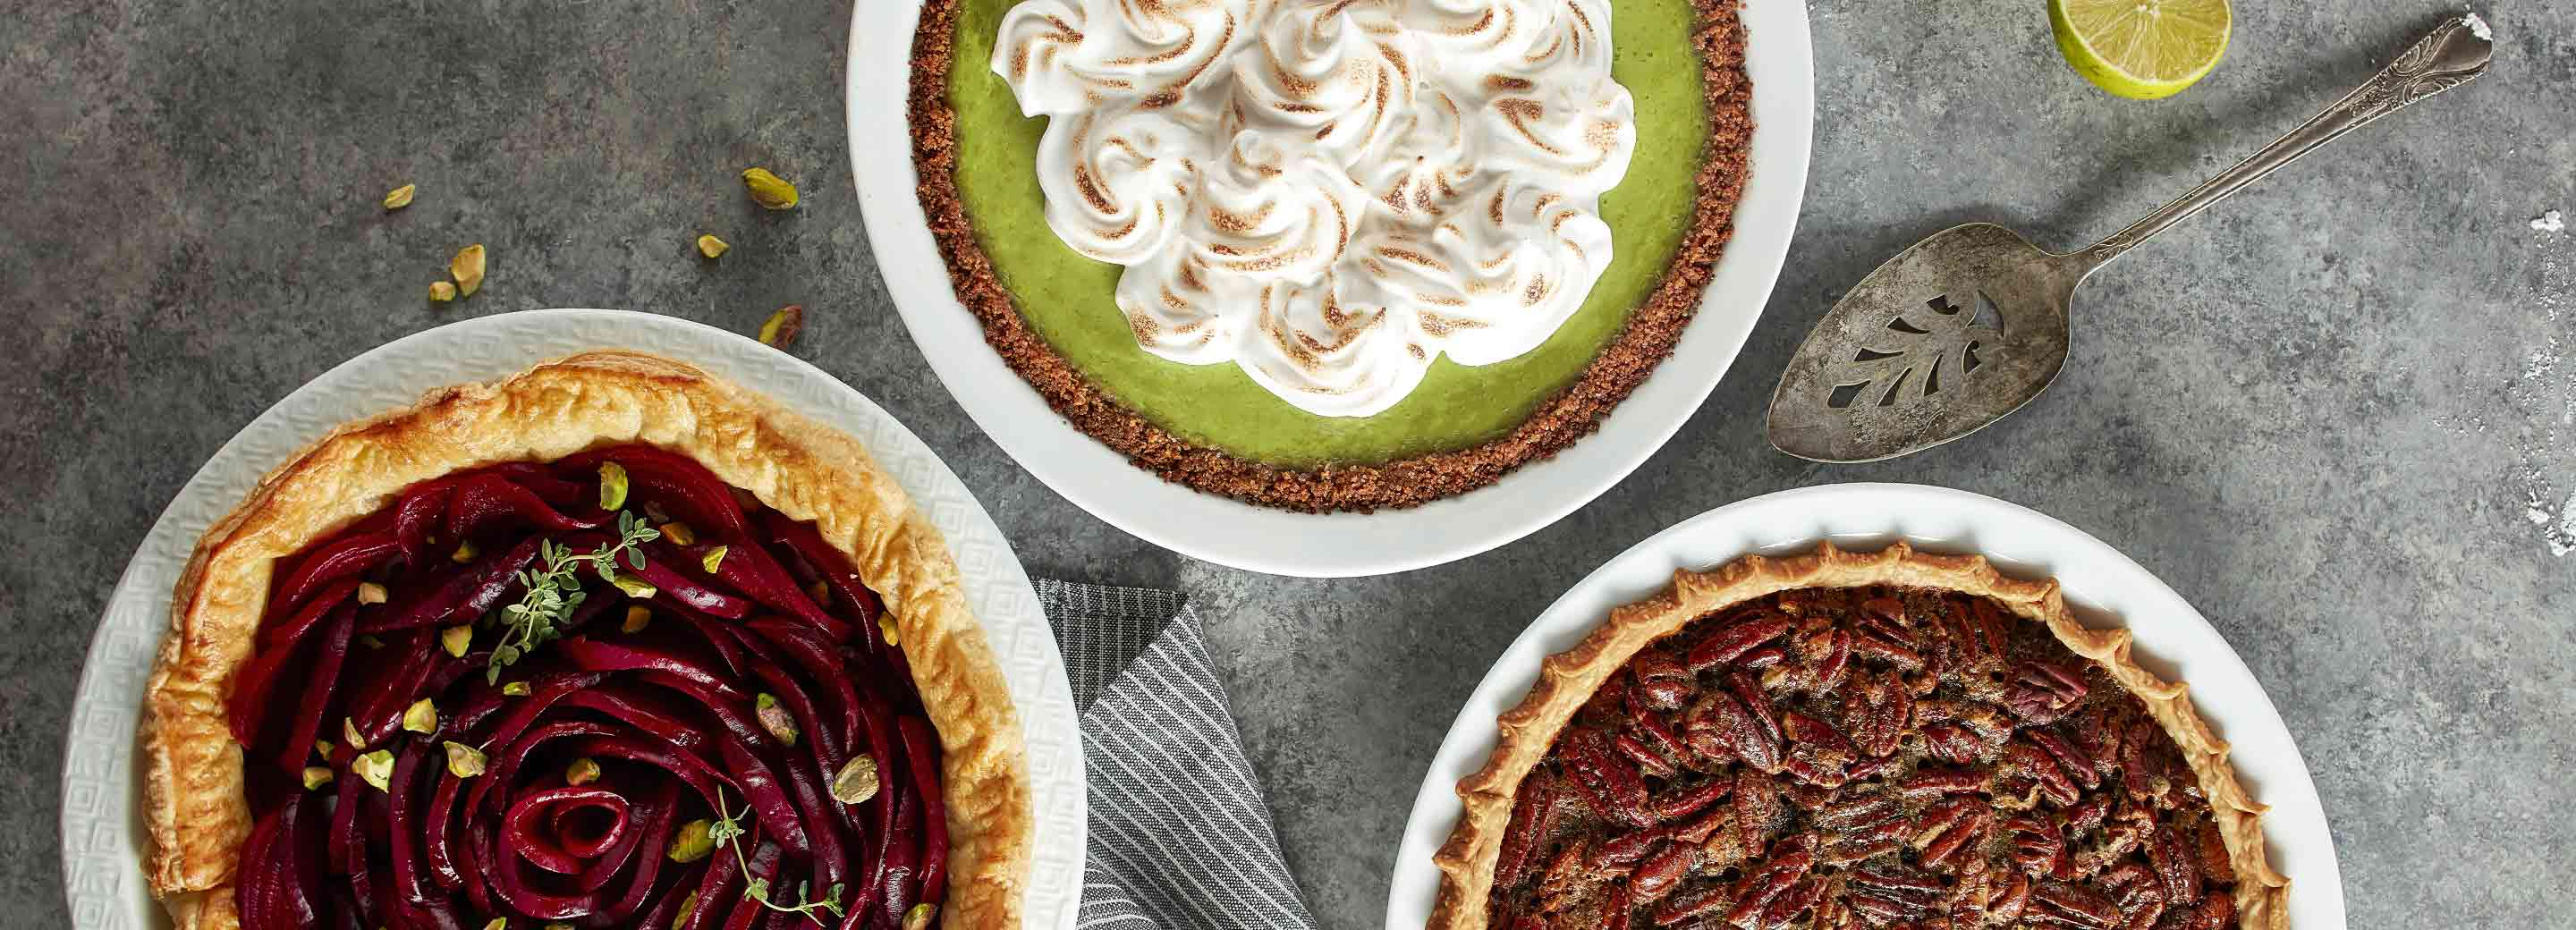 Pecan Pie, Key Lime Pie and Pie with Beets